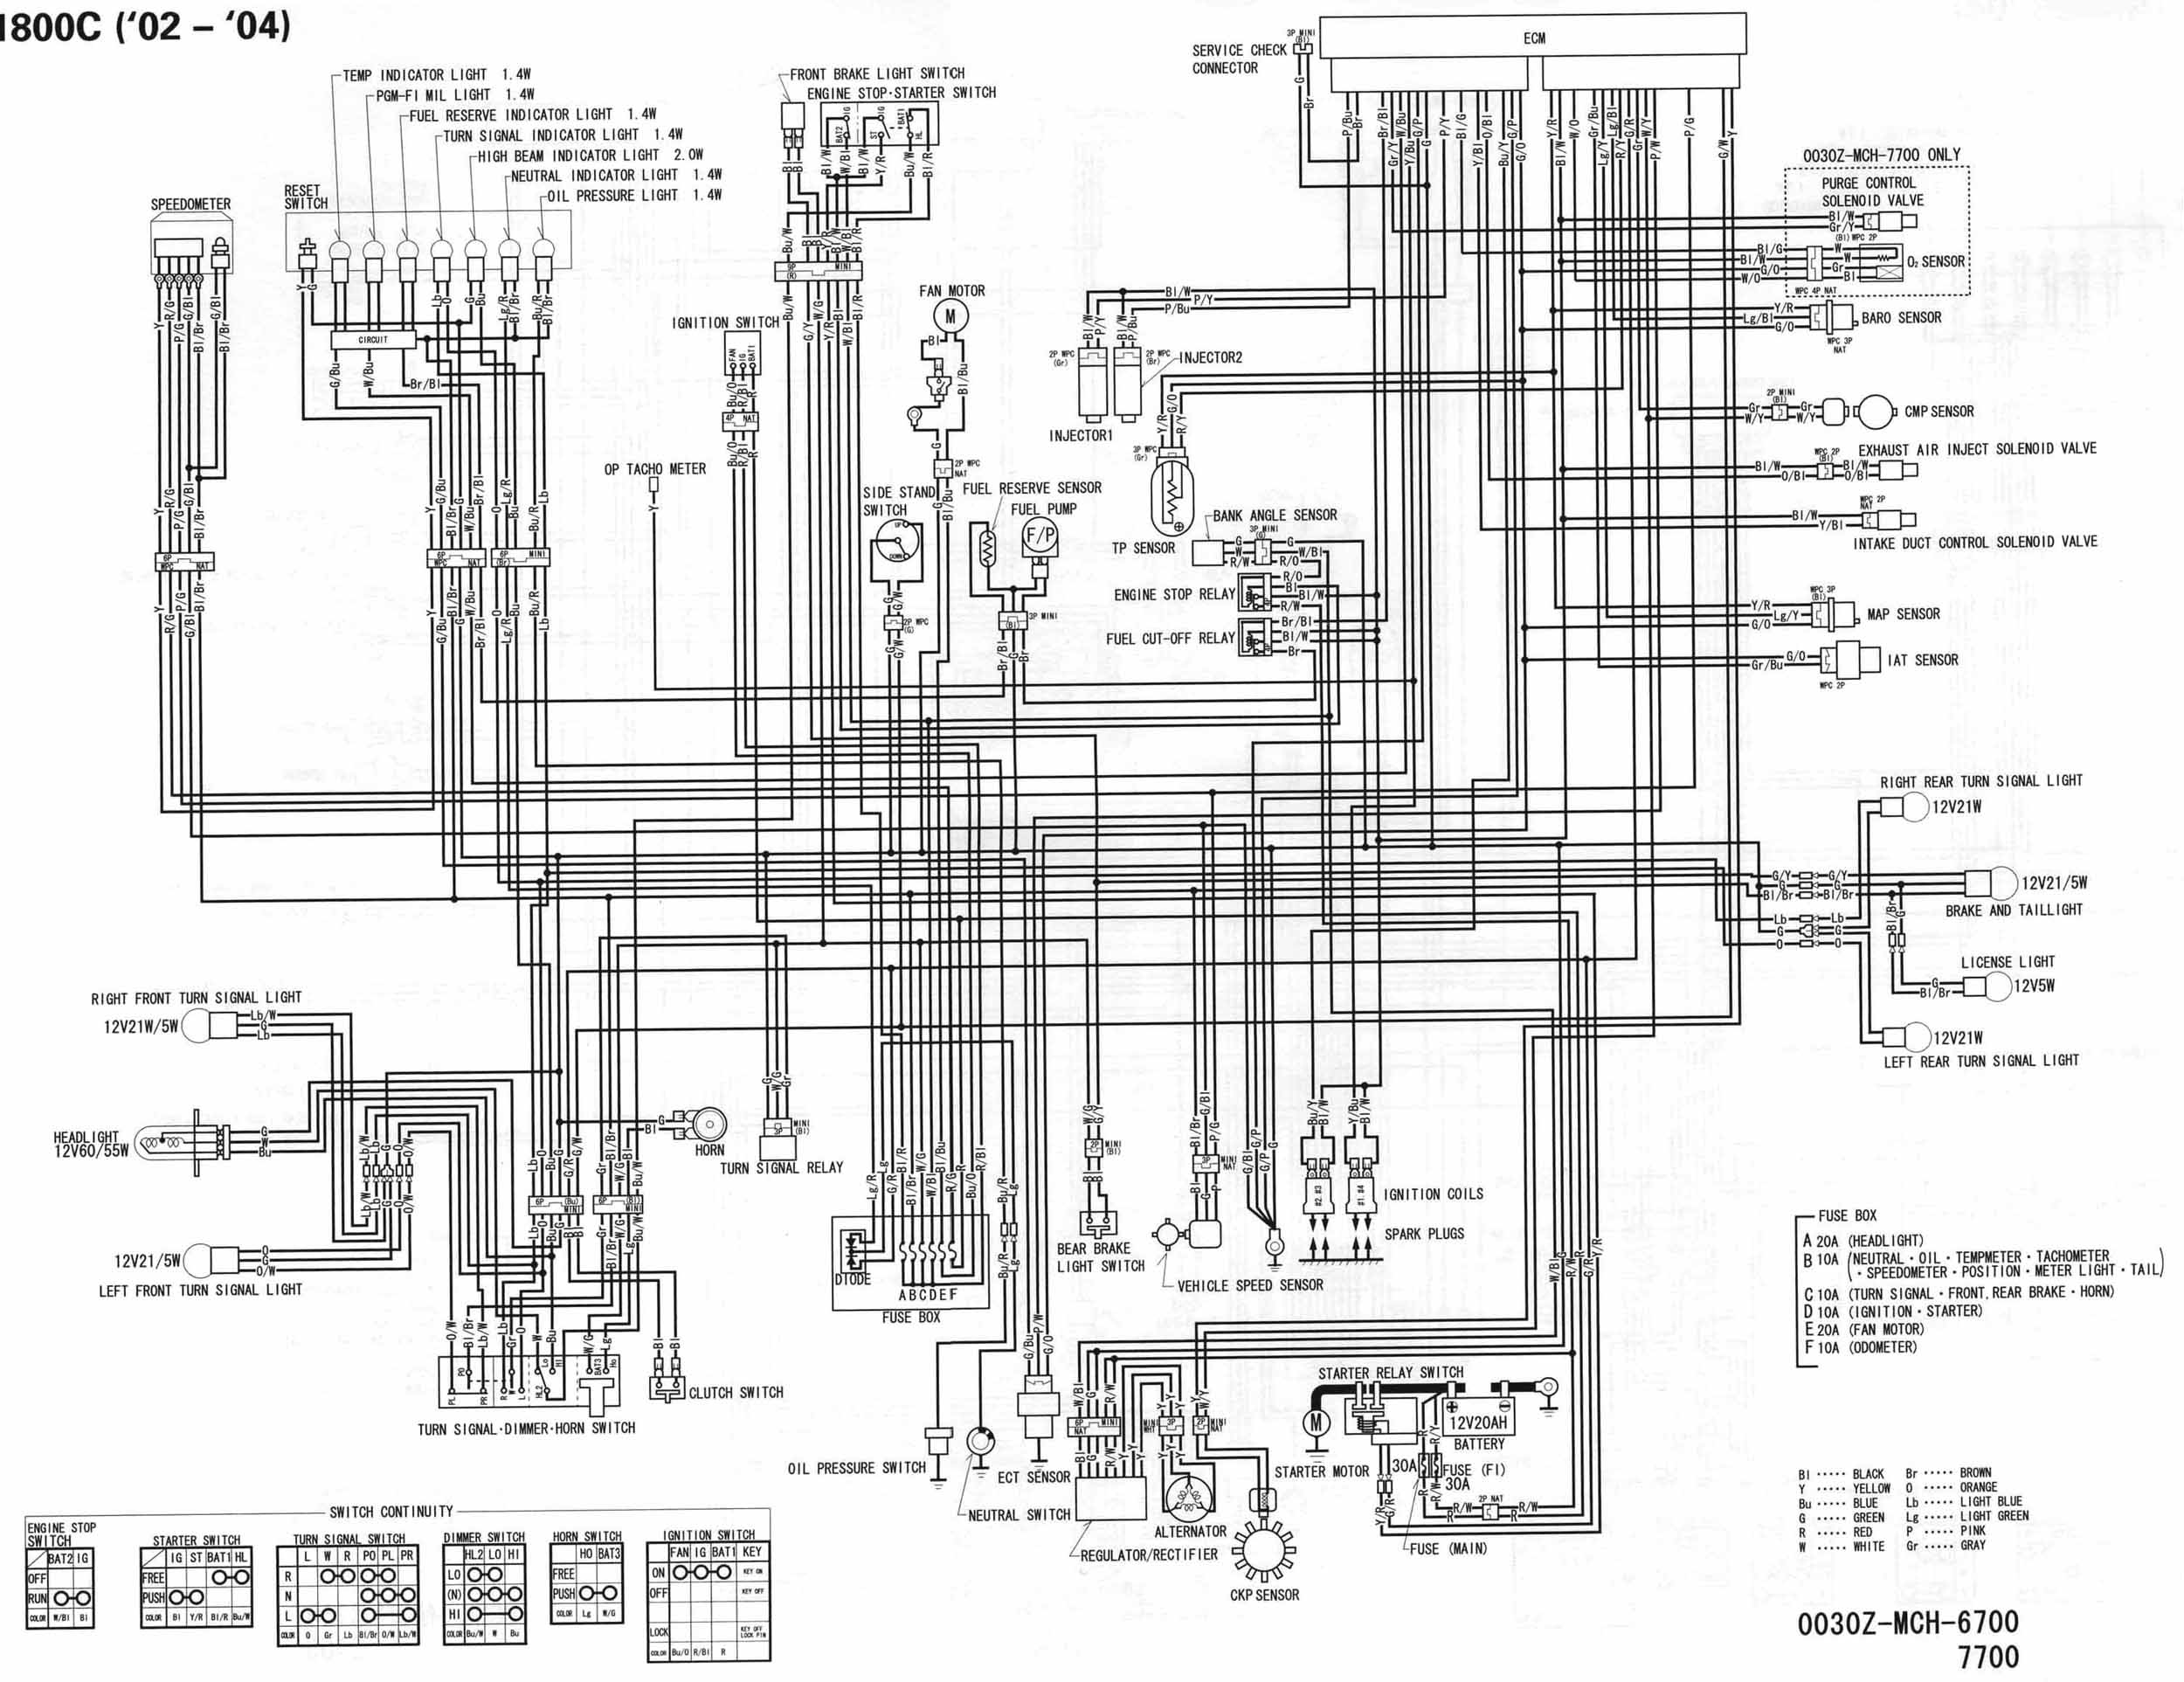 motorcycle electrical wiring diagram thread wiring diagram Ford Electrical Wiring Diagrams motorcycle electrical wiring diagram thread wiring diagrammotorcycle electrical wiring diagram thread wiring library02 04 vtx 1800c